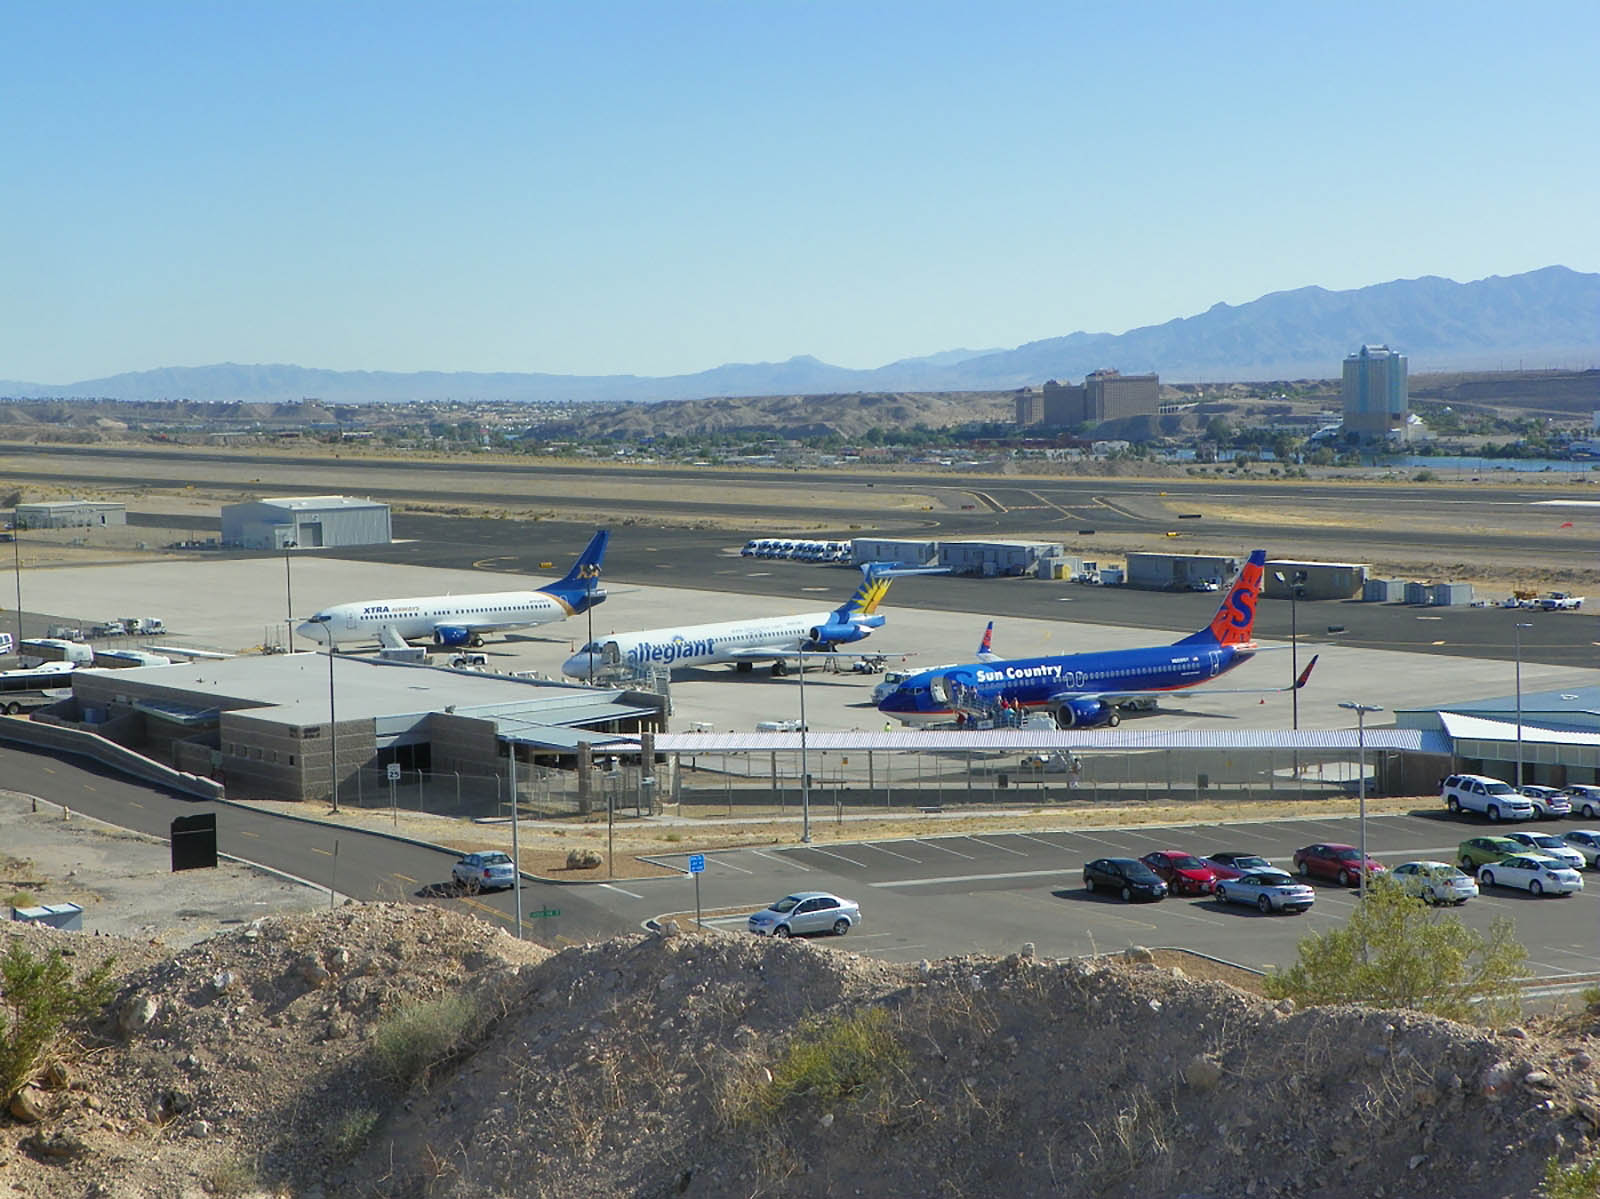 American Airlines To Begin Daily Service From Laughlin